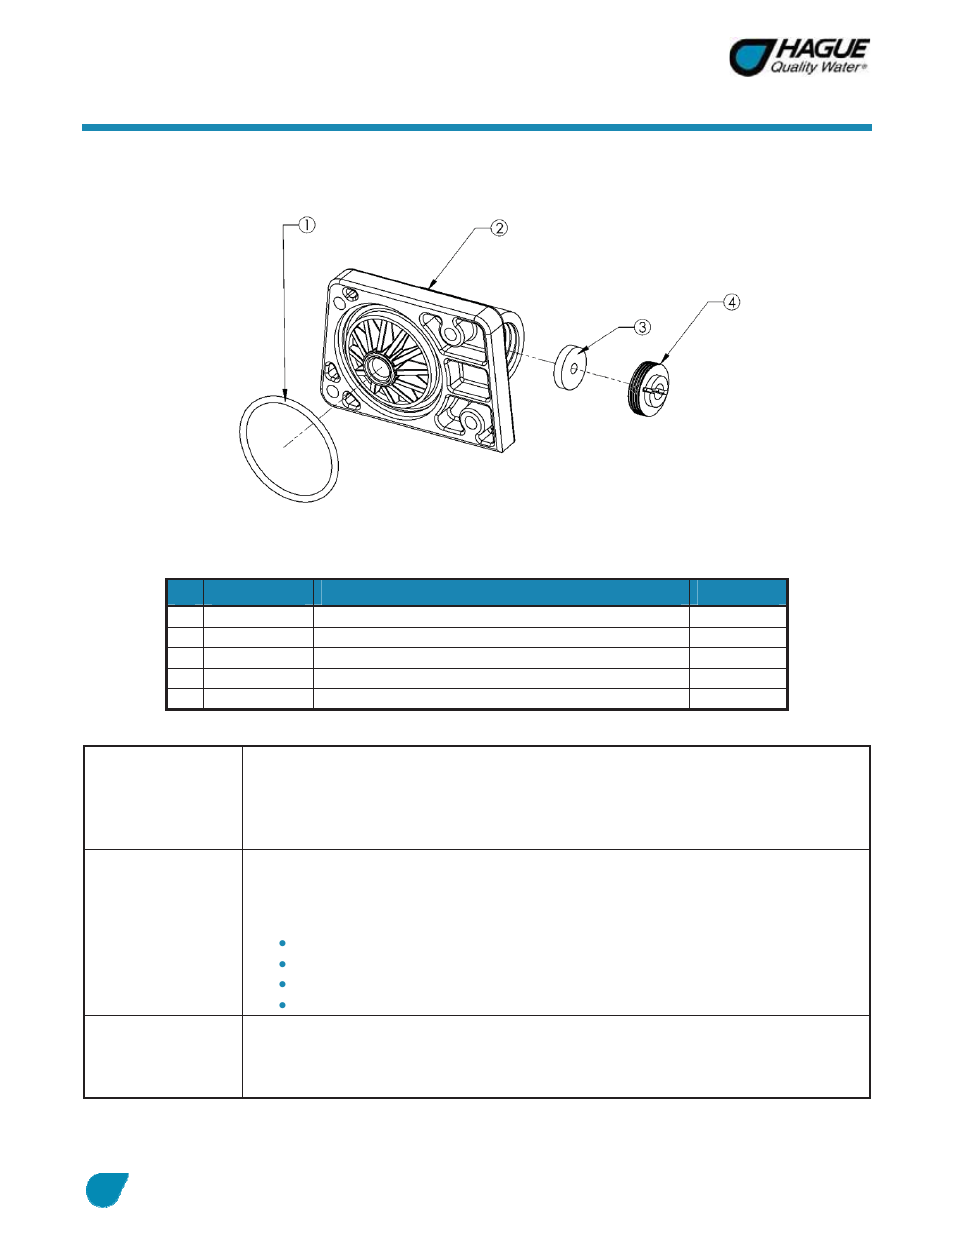 Assembly And Parts Cont Drain End Cap Assembly Manual Guide